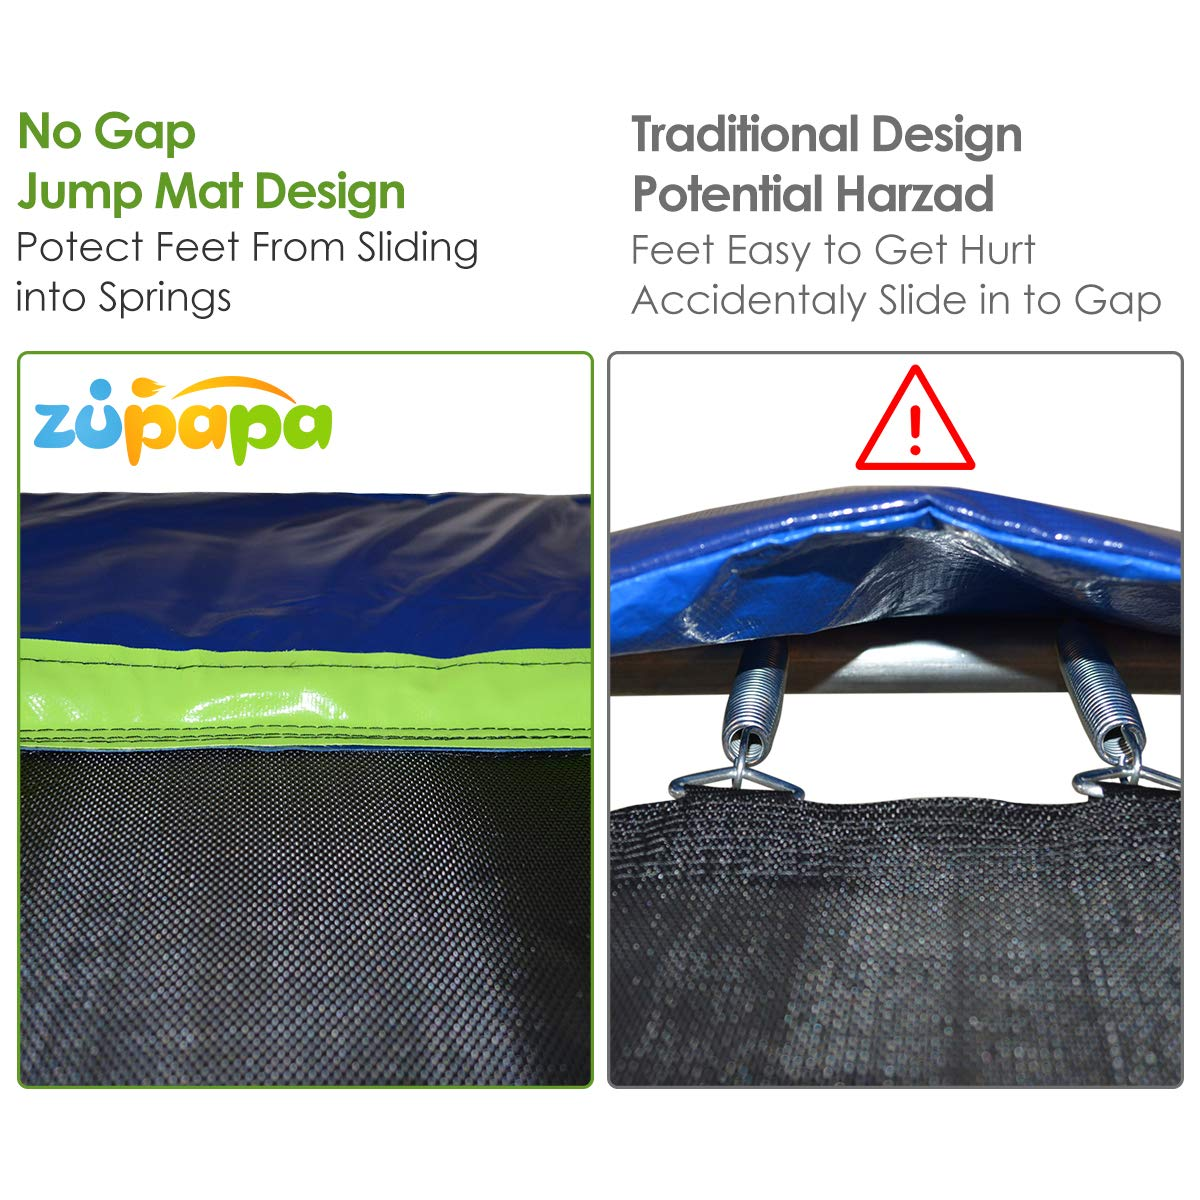 Zupapa 15 14 12 Ft TUV Approved Trampoline with Enclosure Net and Pole and Safety Pad and Ladder and Jumping Mat and Rain Cover 108 Springs Size 15 Feet by Zupapa (Image #3)